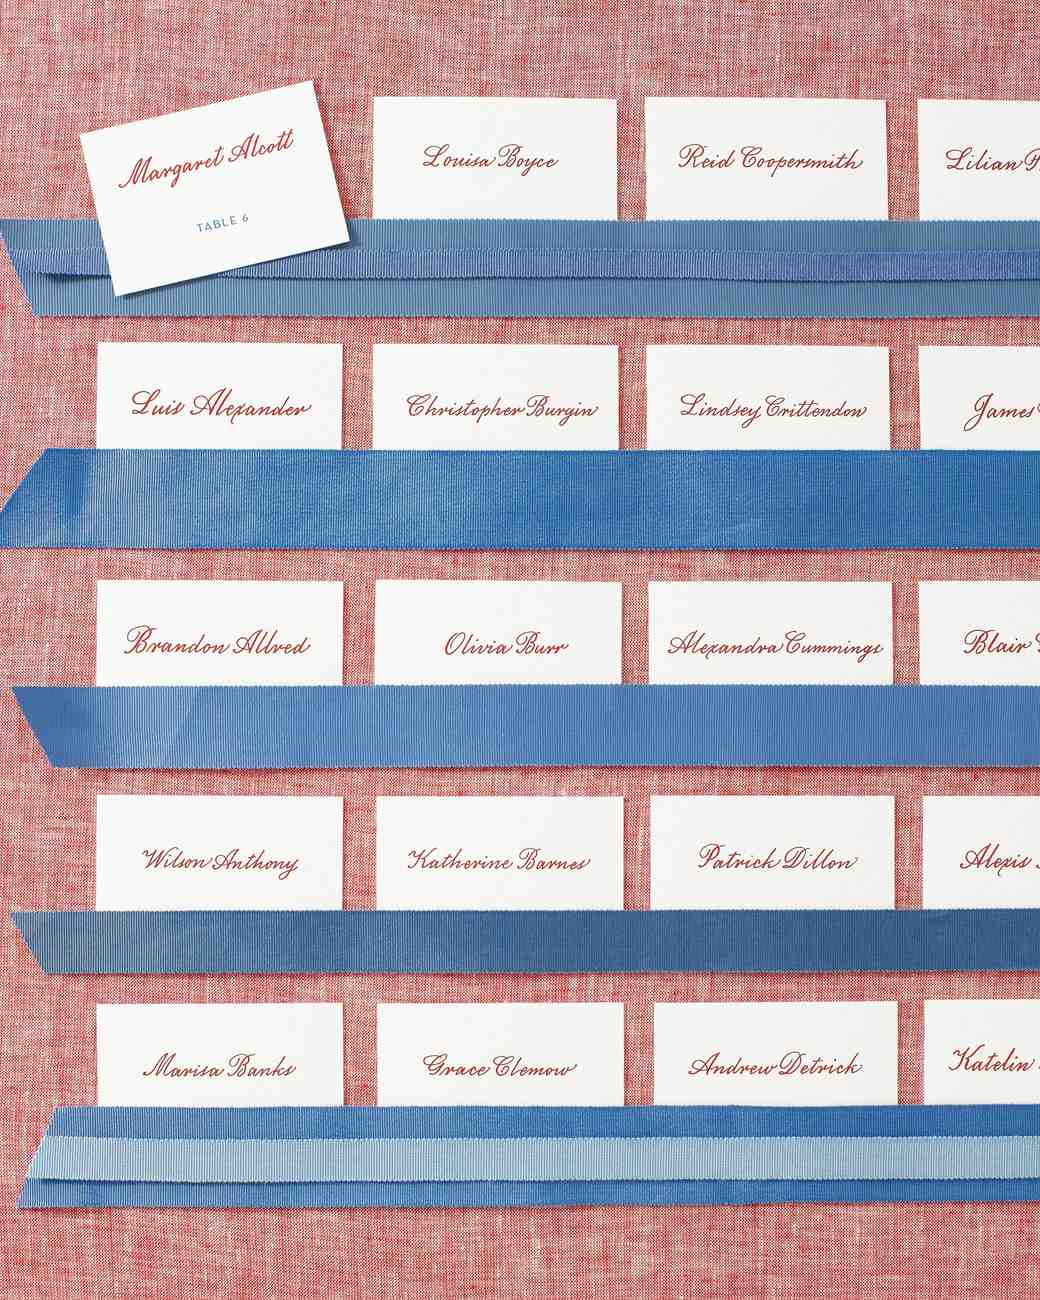 blue-red-wedding-colors-escort-cards-041-d112667.jpg